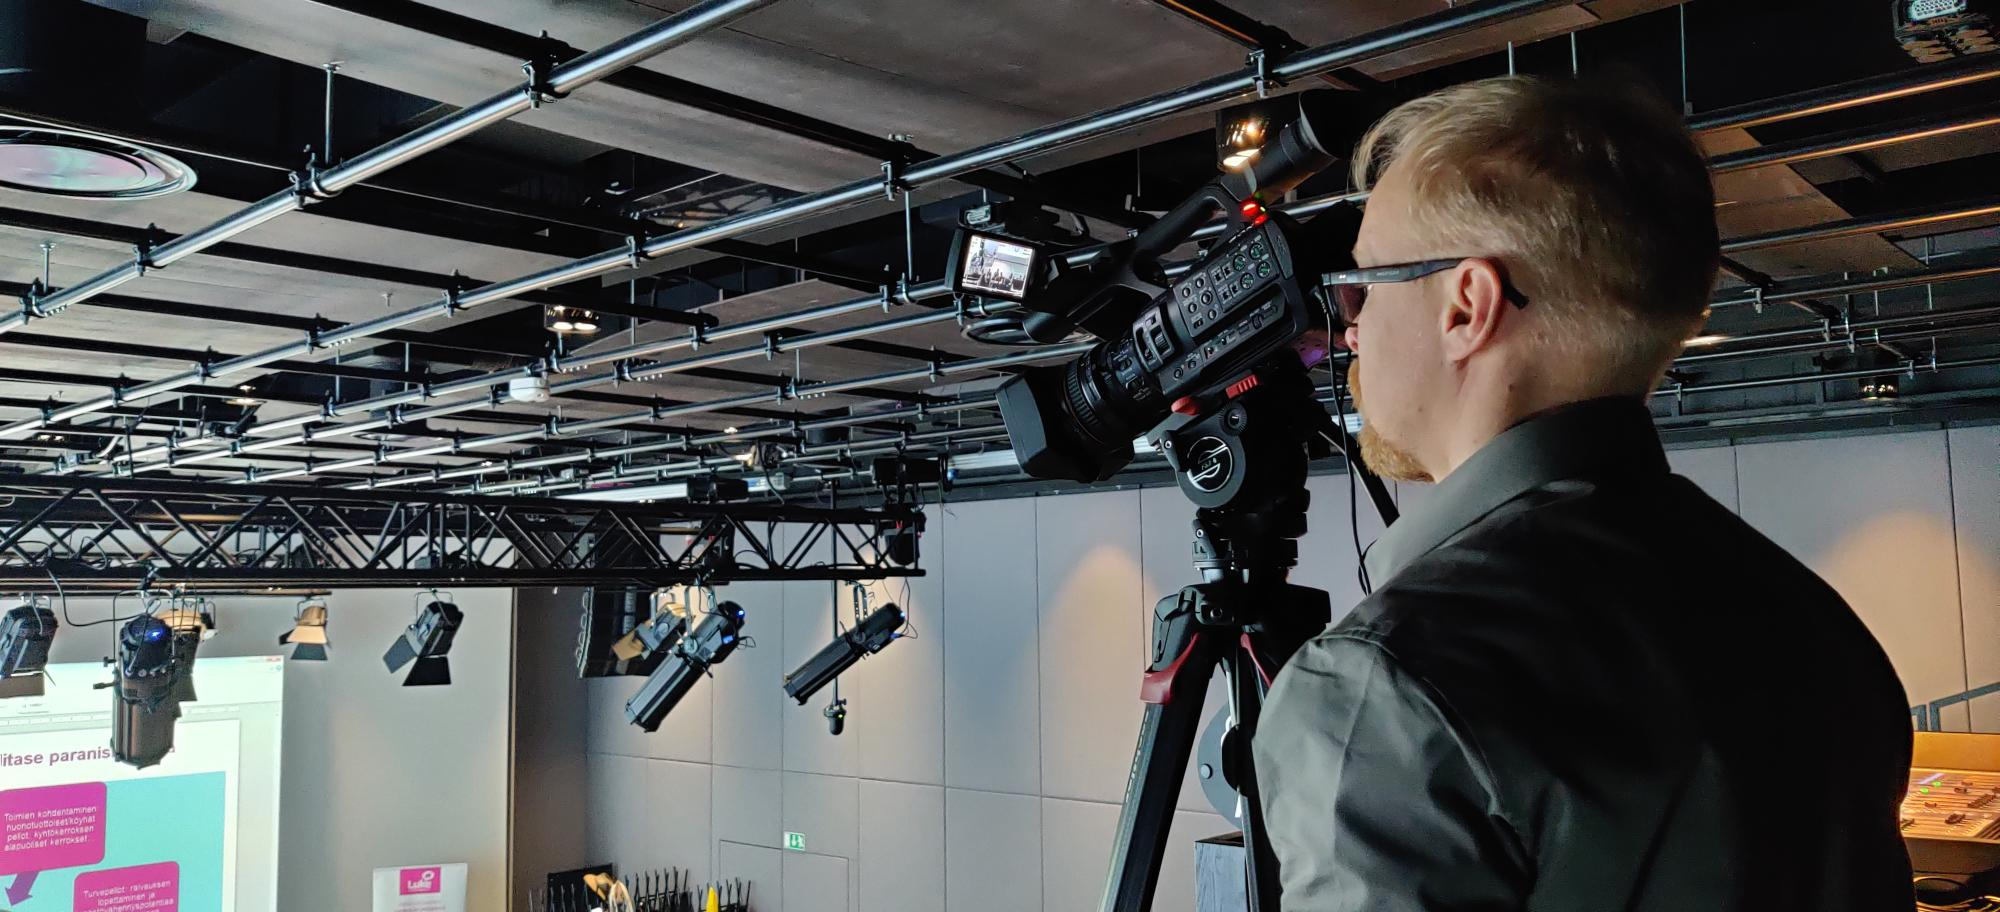 Reinforcing Unigrafia's streaming team – Ari Hiekkataipale is the latest recruitment to contribute to the AV Specialists team